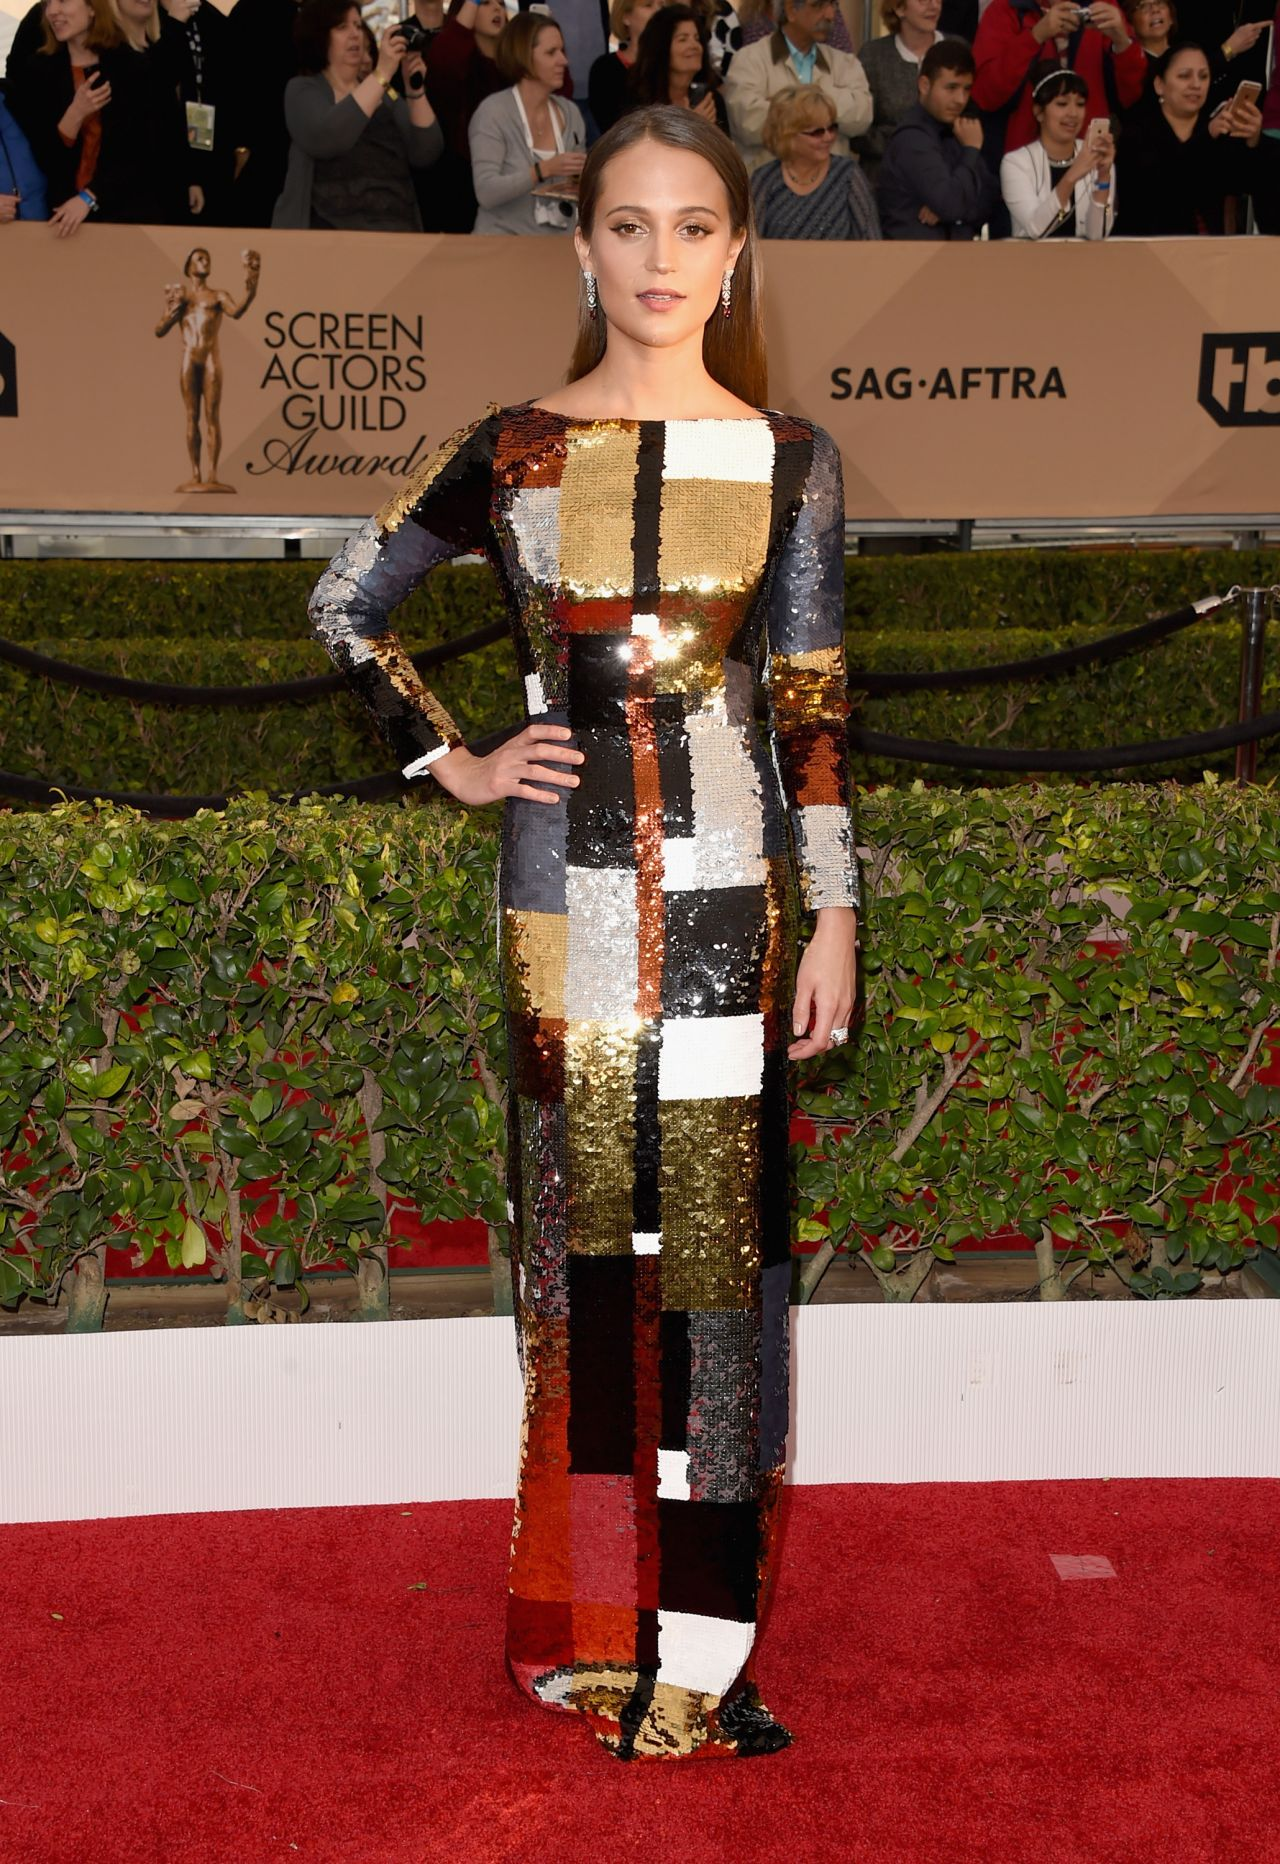 alicia-vikander-sag-awards-2016-at-shrine-auditorium-in-los-angeles-7